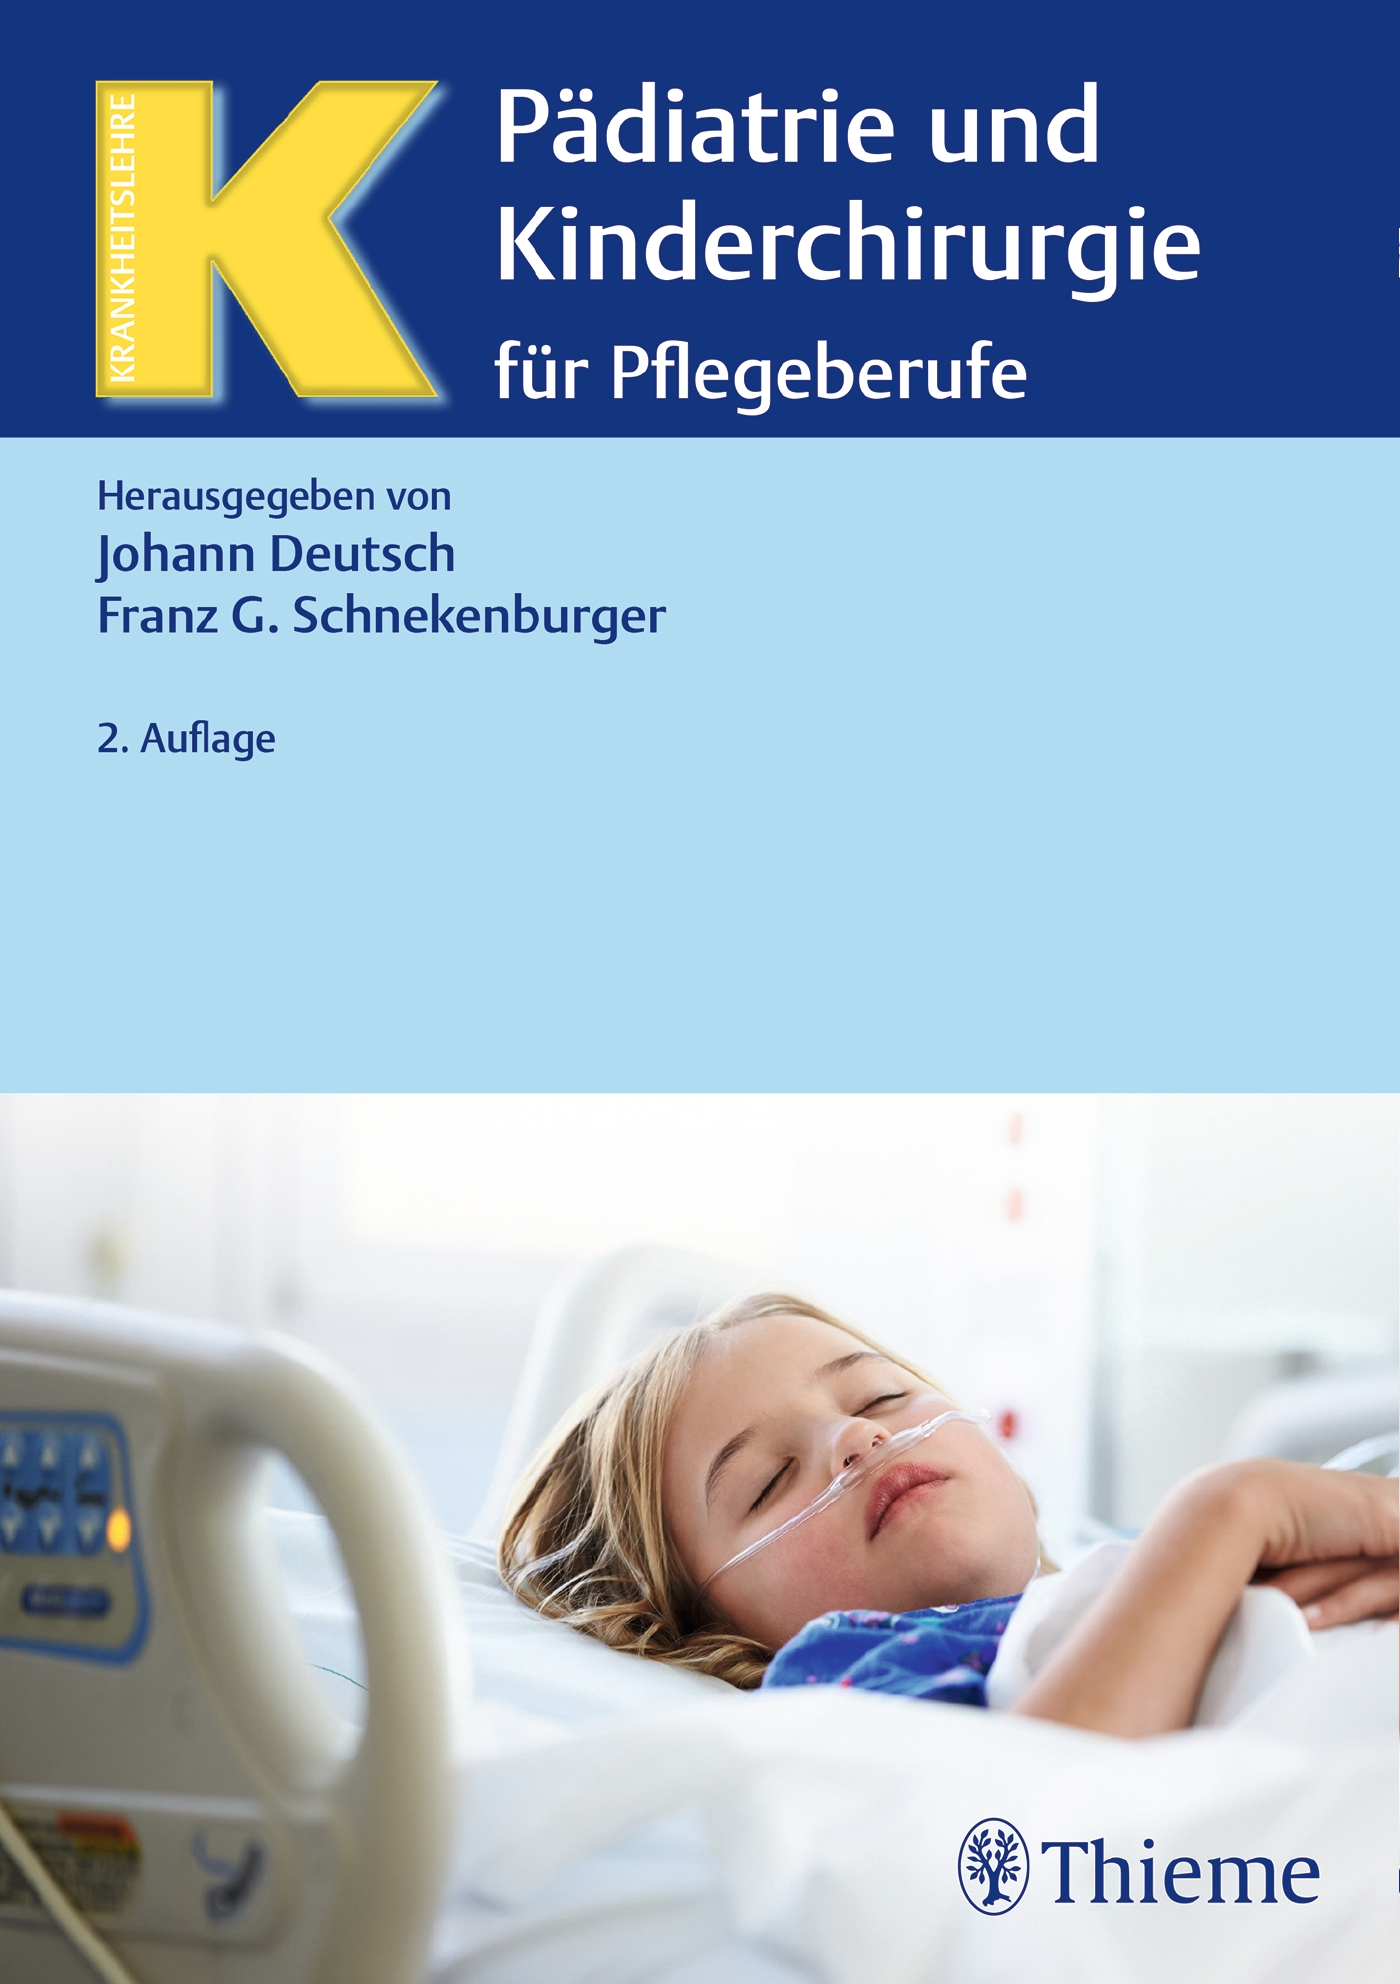 Pädiatrie und Kinderchirurgie